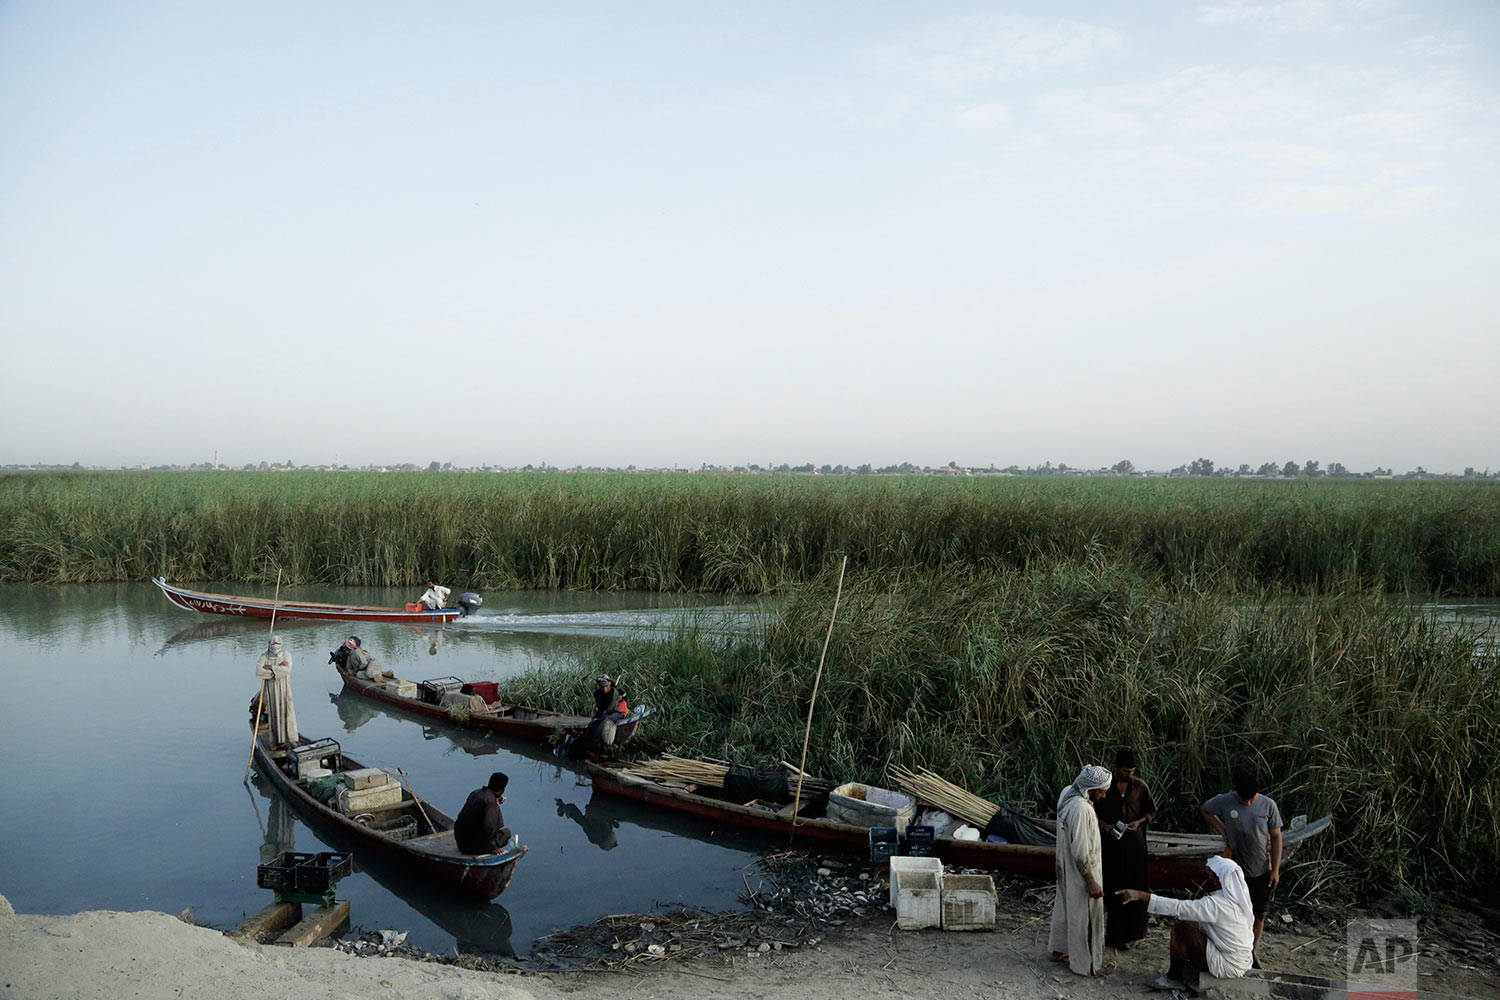 In this Sept. 10, 2017 photo, fishermen gather in the morning at an ad hoc market along a main canal in the marsh of Chabaish, Iraq. From here merchants buy fish to transport and sell to markets in the nearby cities of Nassariyah and Najaf in Iraq's south. (AP Photo/Susannah George)